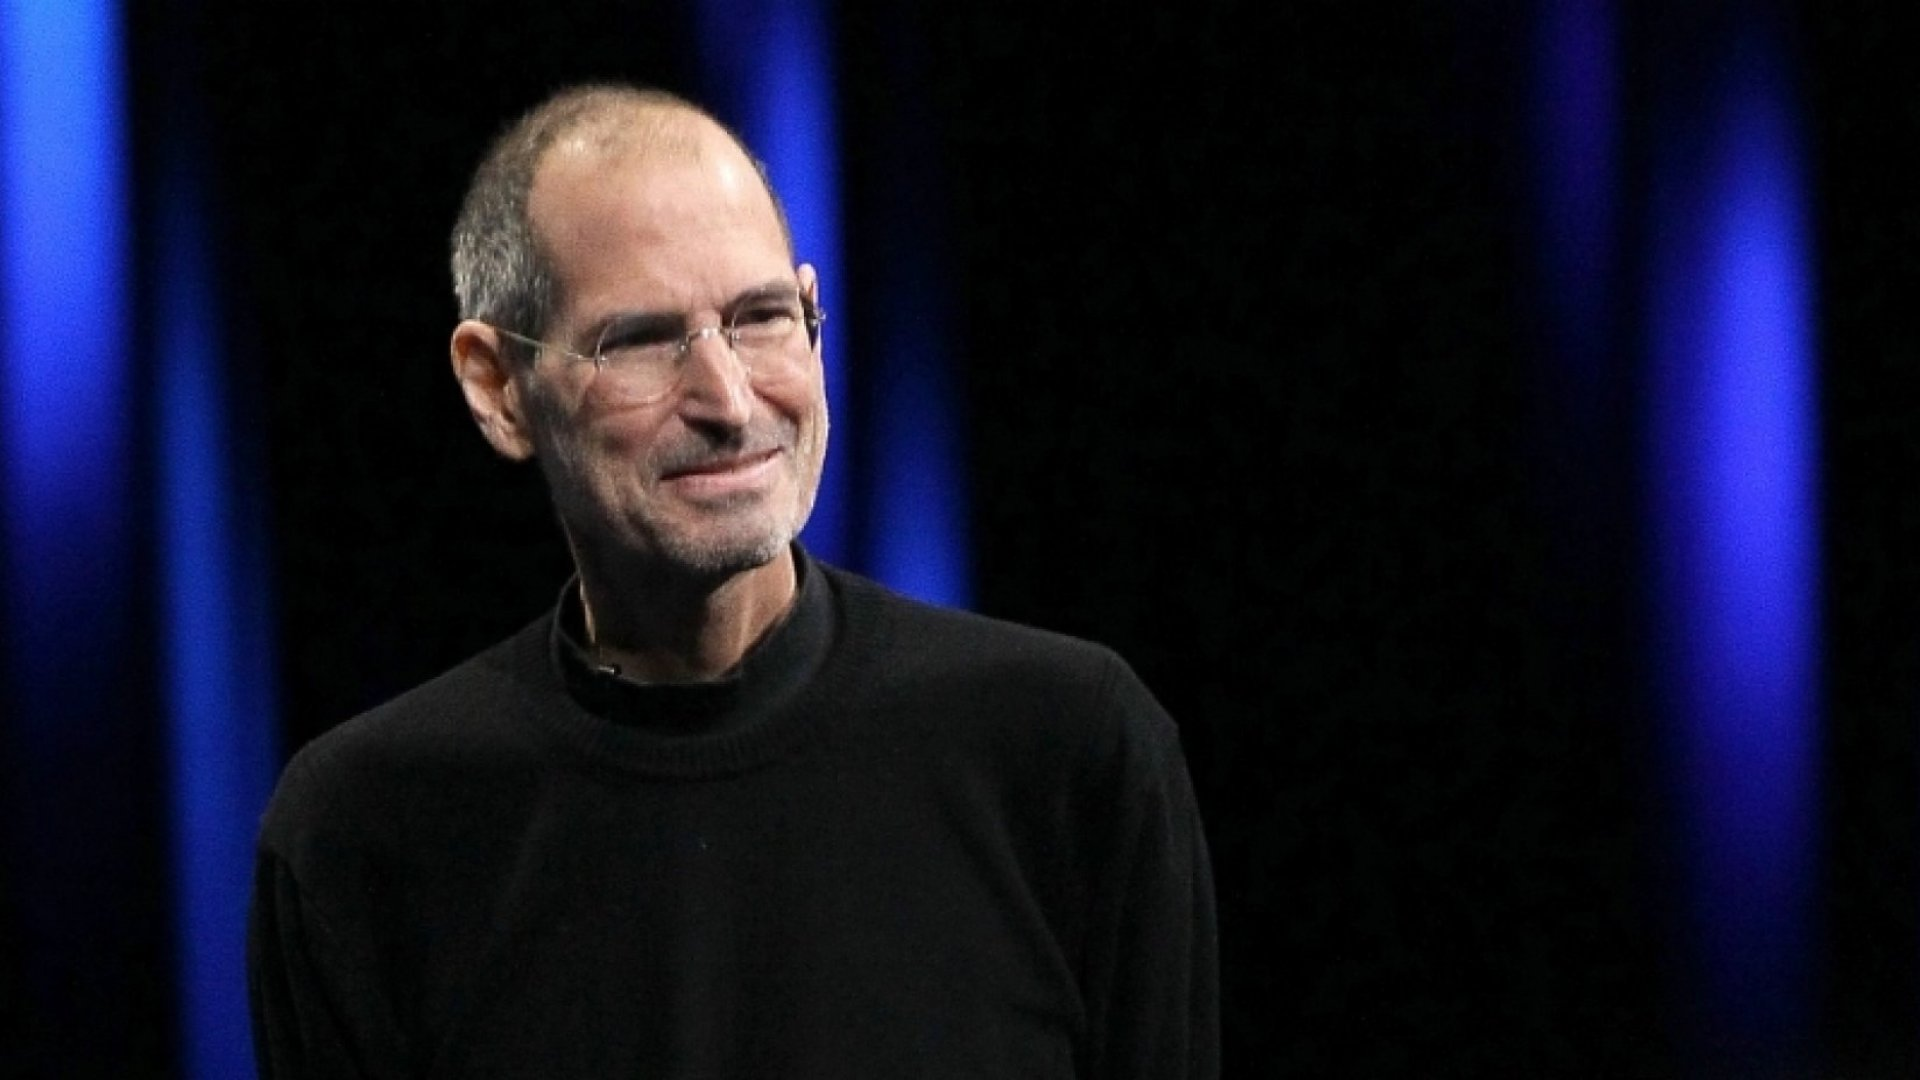 43 Surprising Facts About Steve Jobs